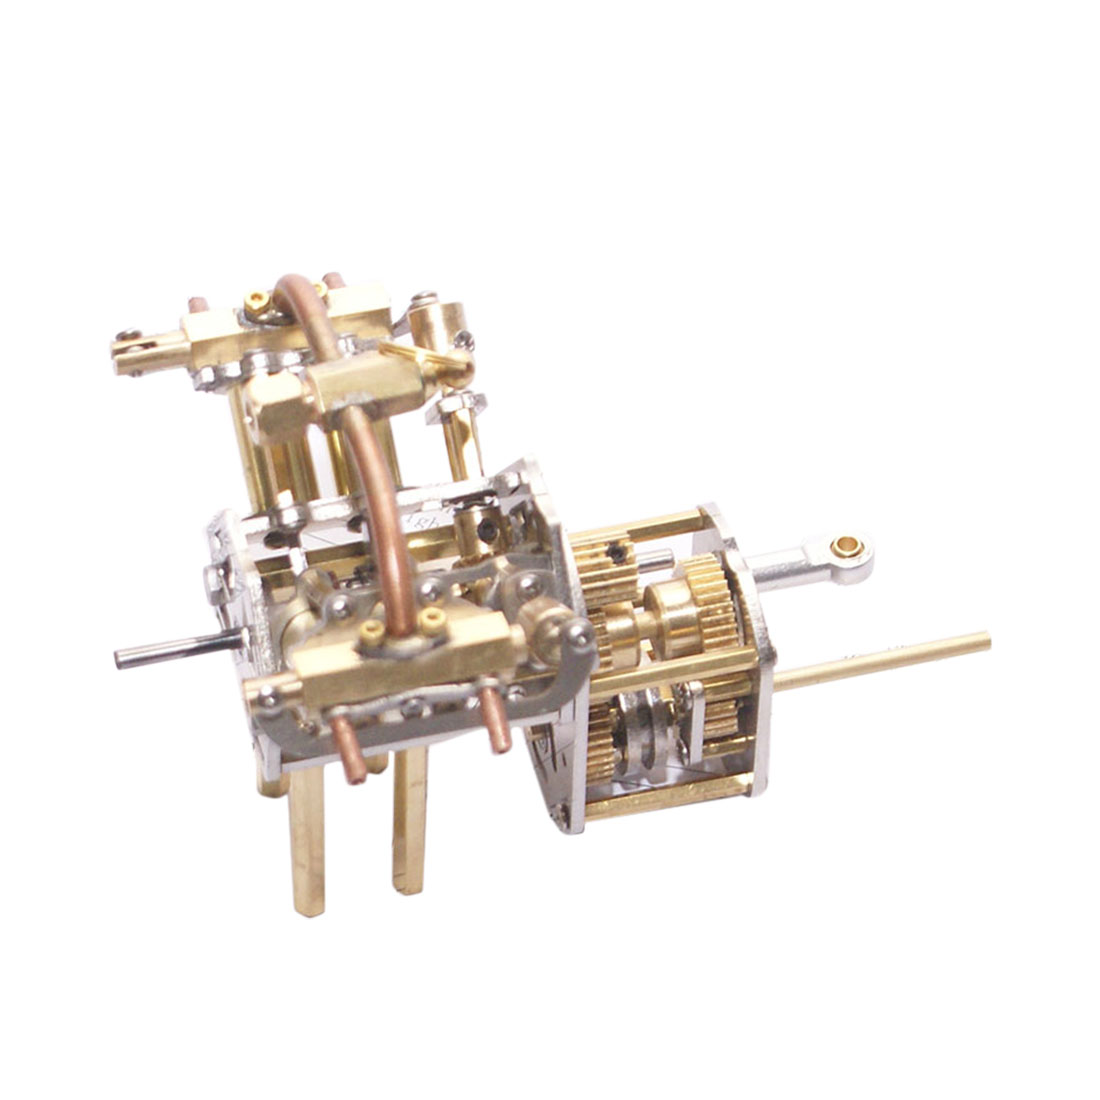 1pcs Mini V4-Steam Engine Model With Reverse Gearbox (Without Boiler) 2020 New Gifts